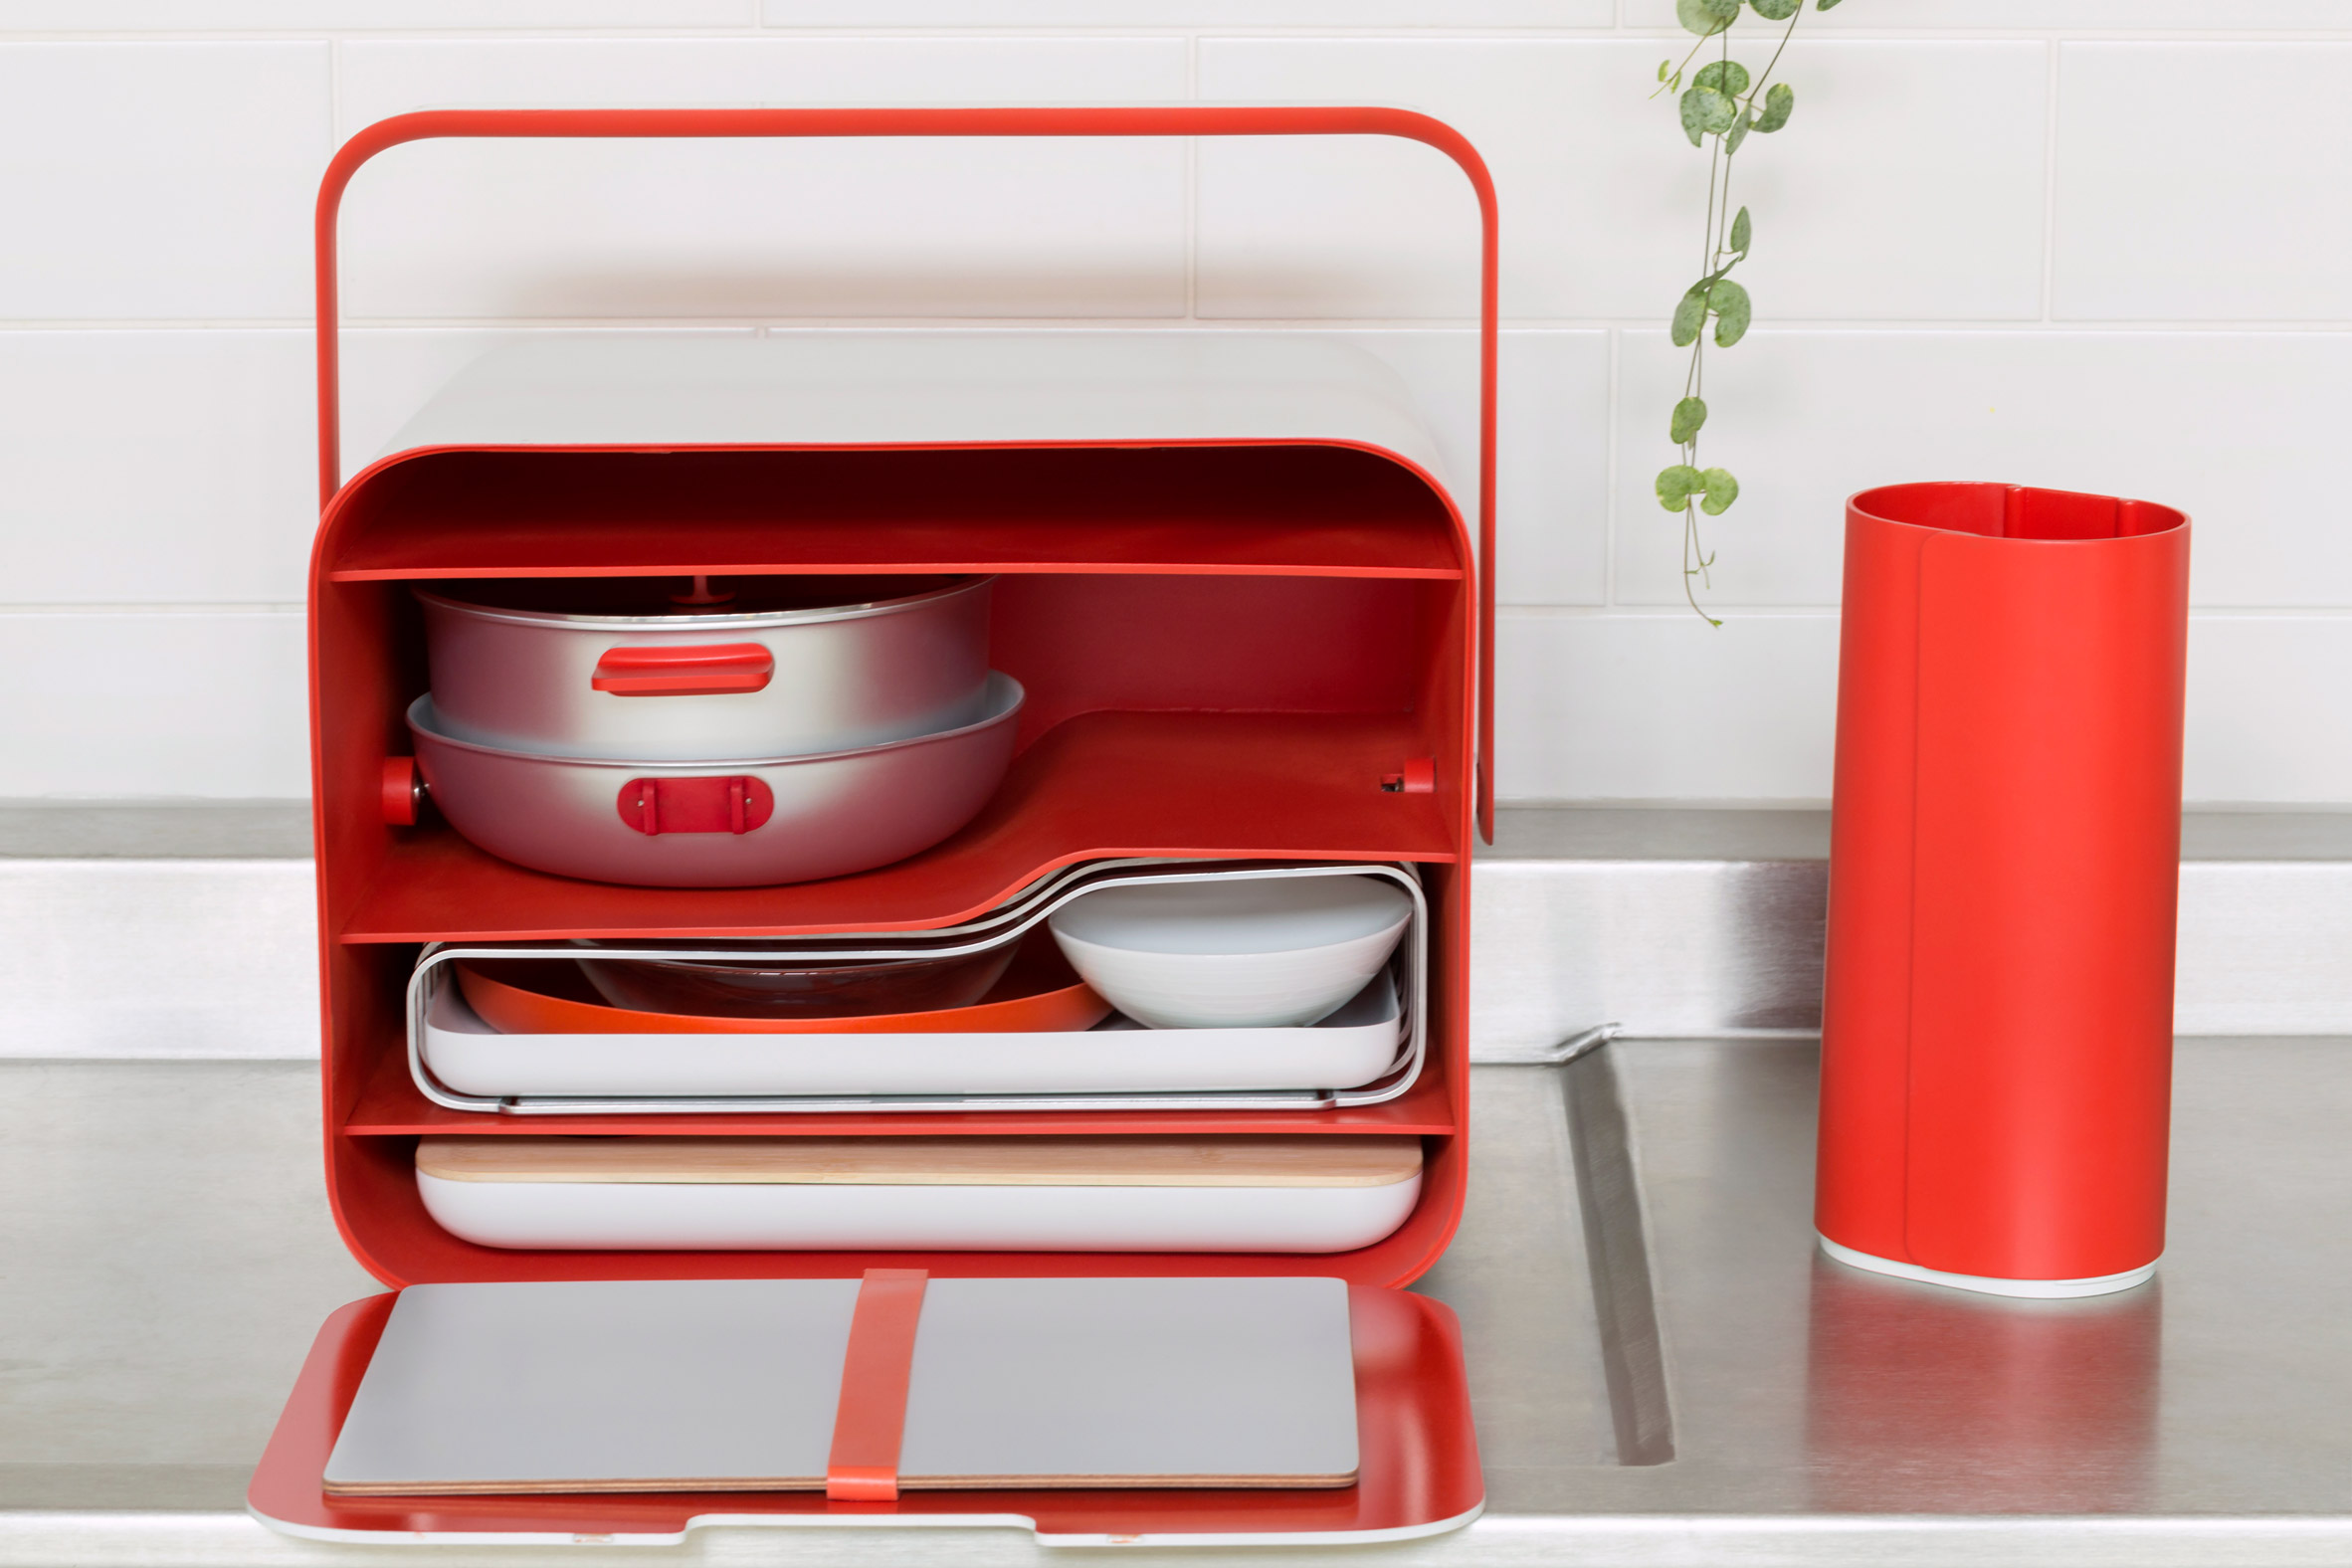 All-in-one portable kitchen designed for millennials short on time and space